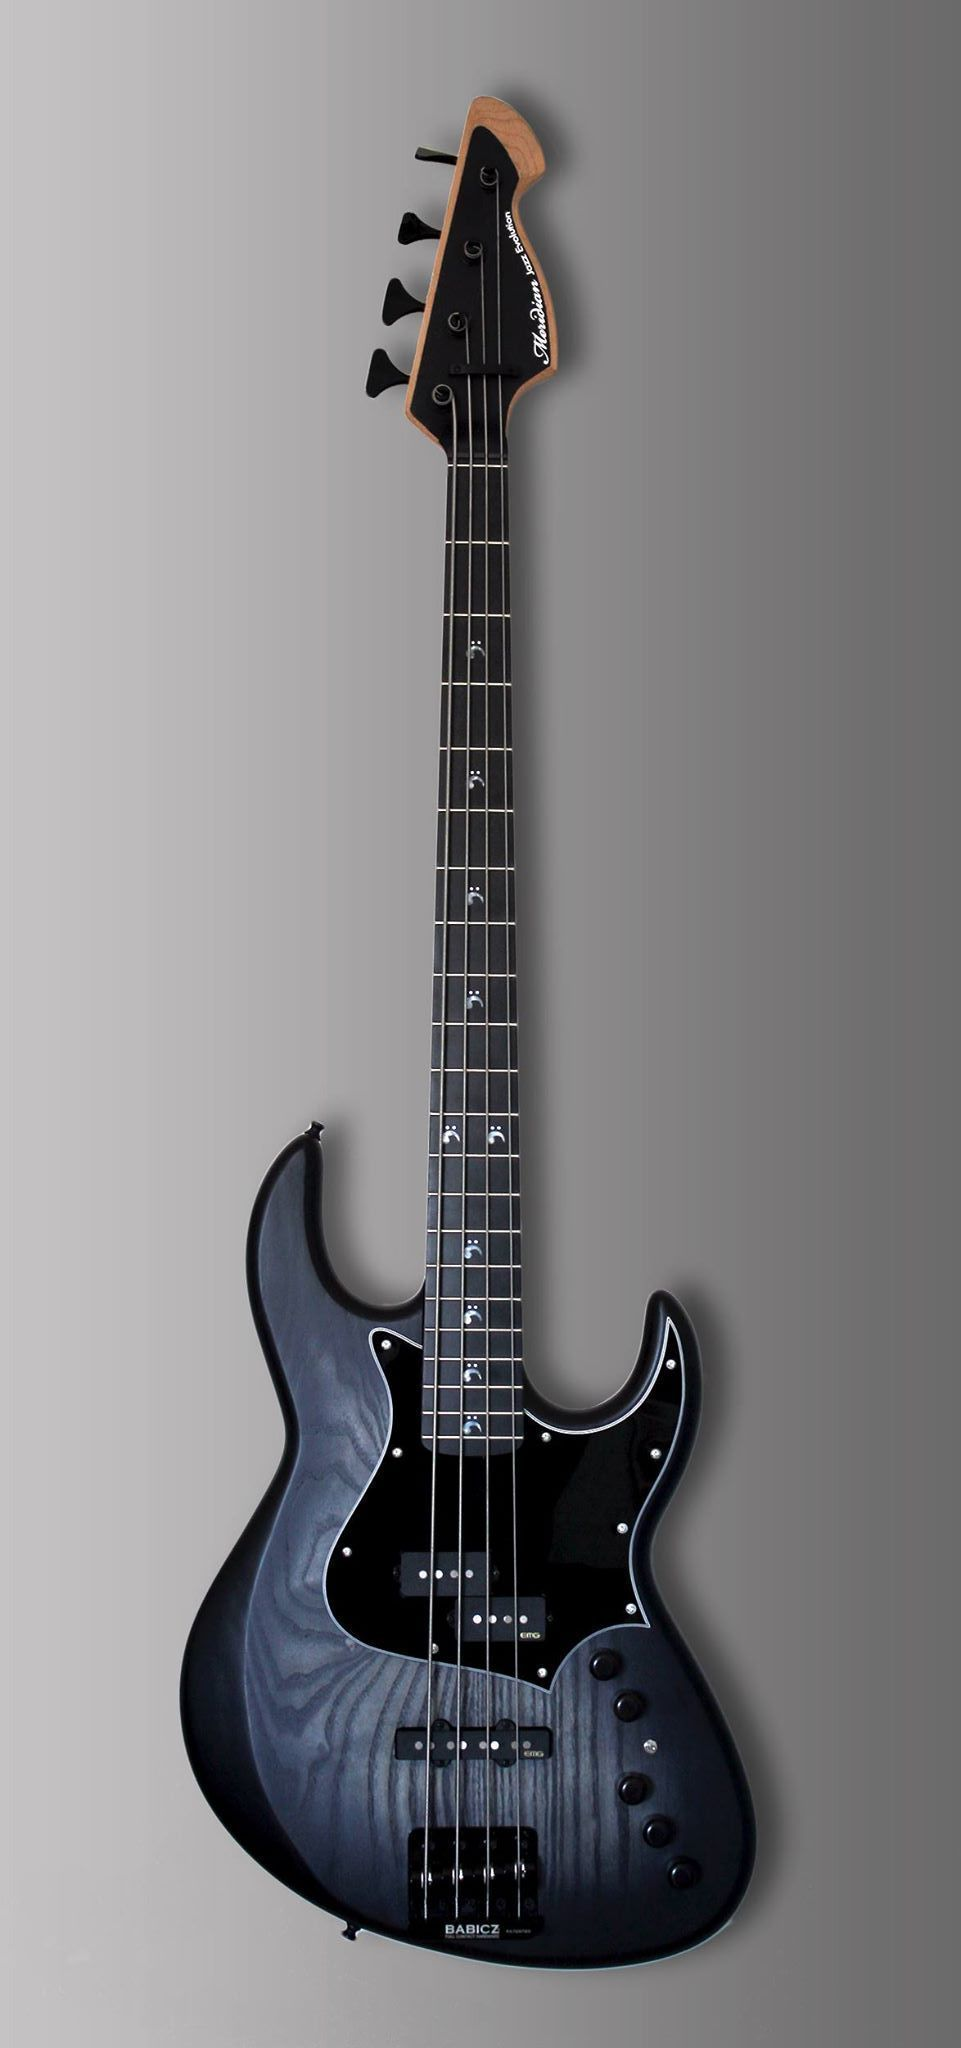 Pin By Ethan On Music Stuuuuuuuf Pinterest Guitar Bass And Jazz